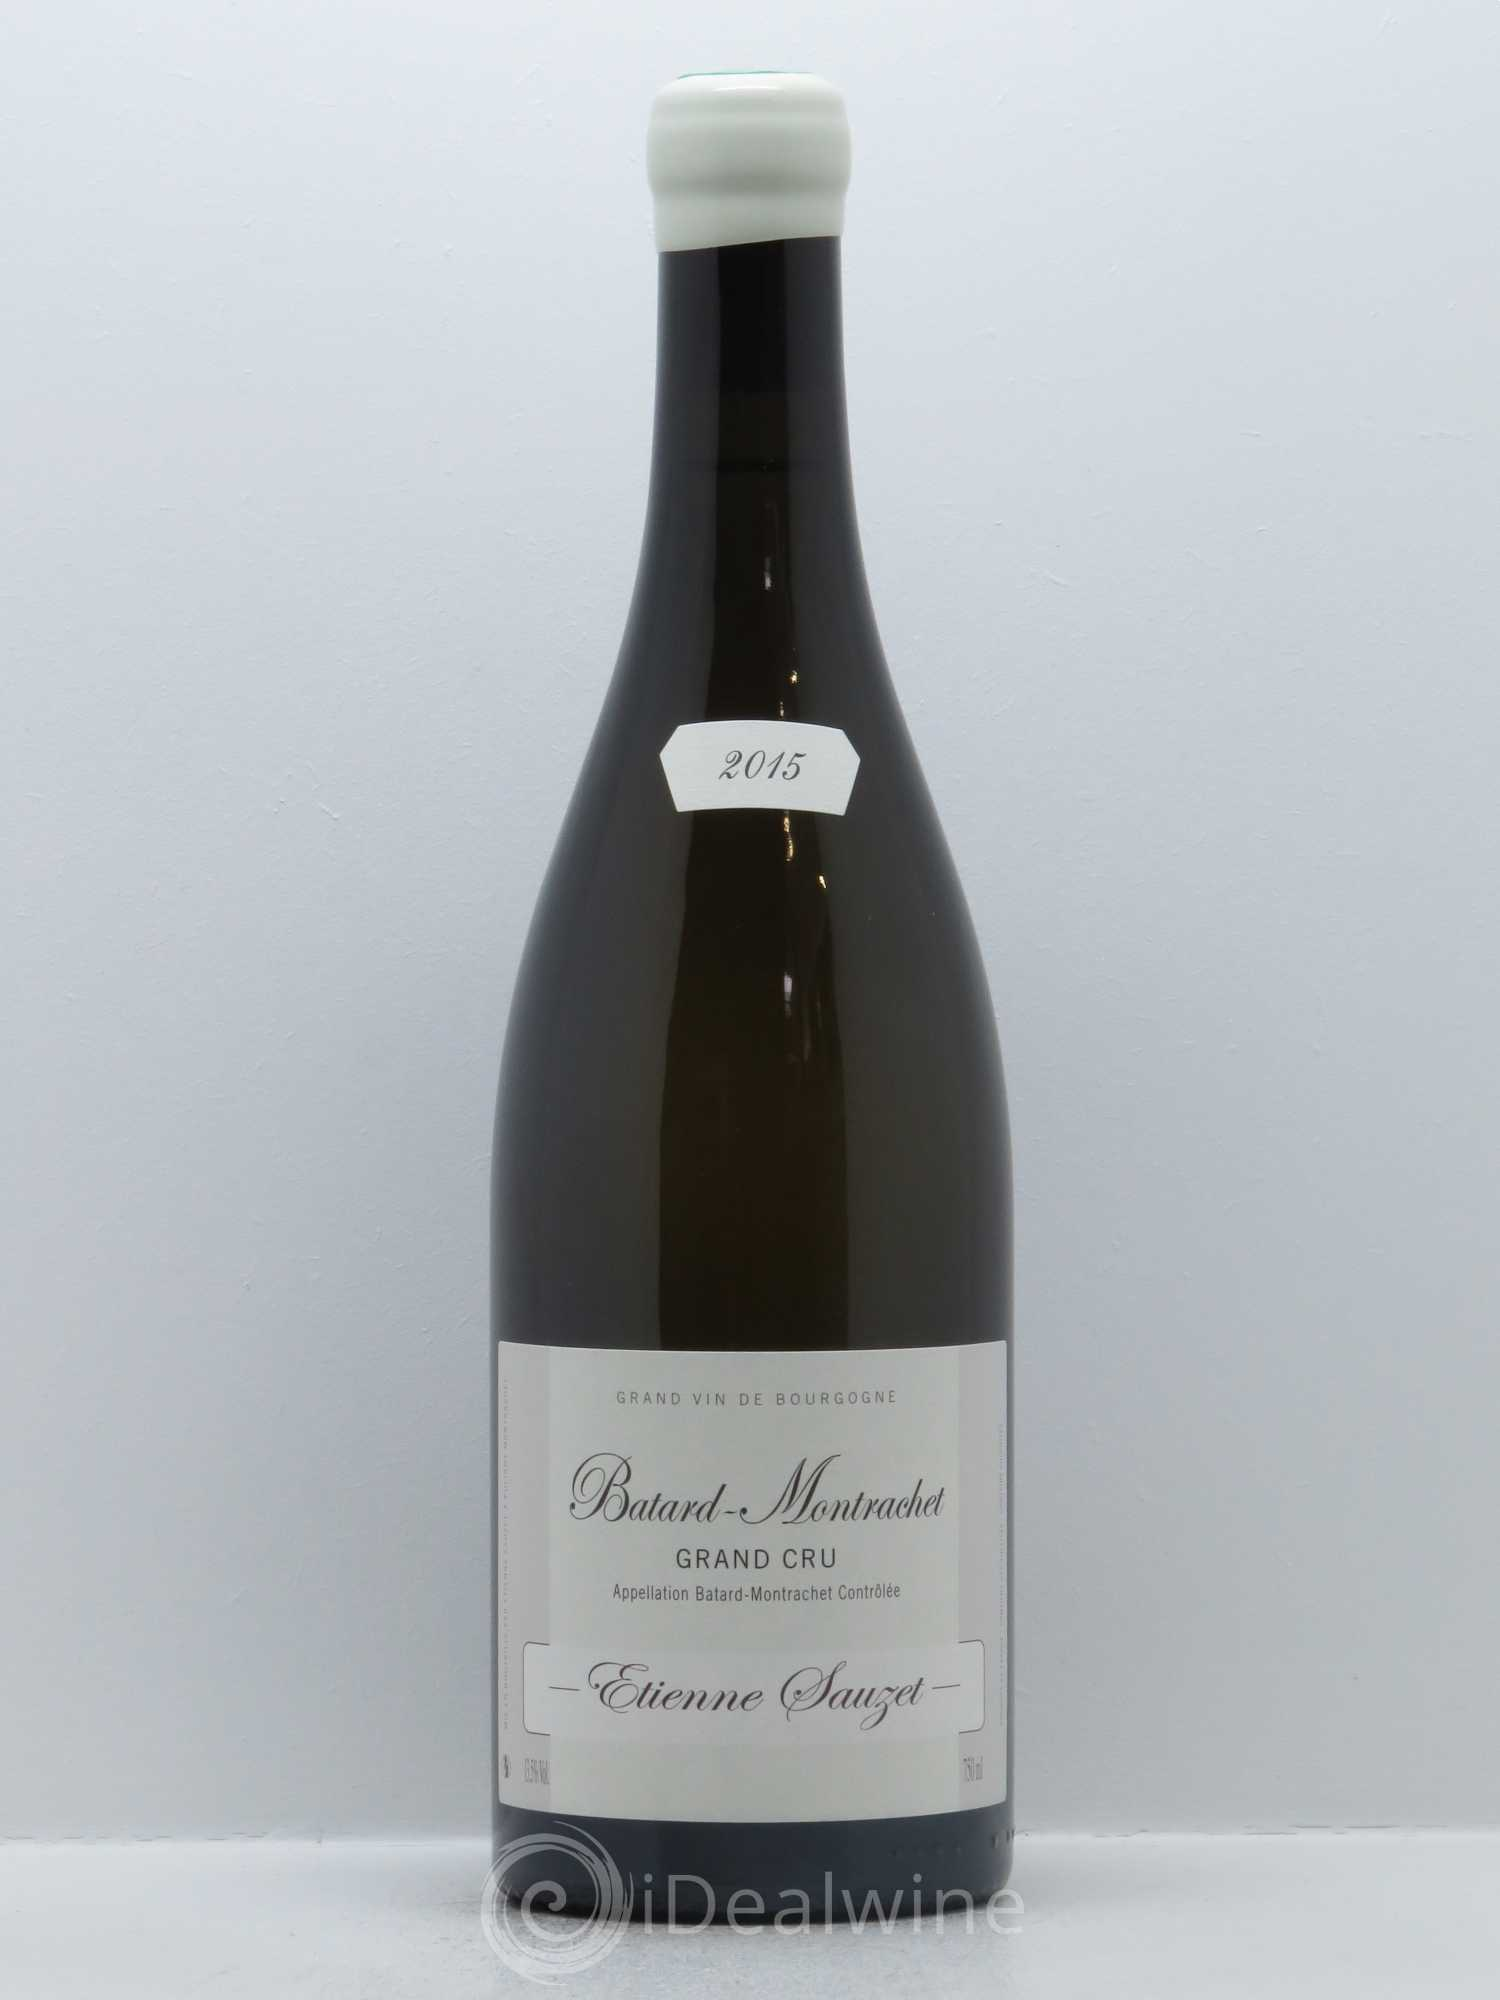 Bâtard-Montrachet Grand Cru Etienne Sauzet  2015 - Lot of 1 Bottle